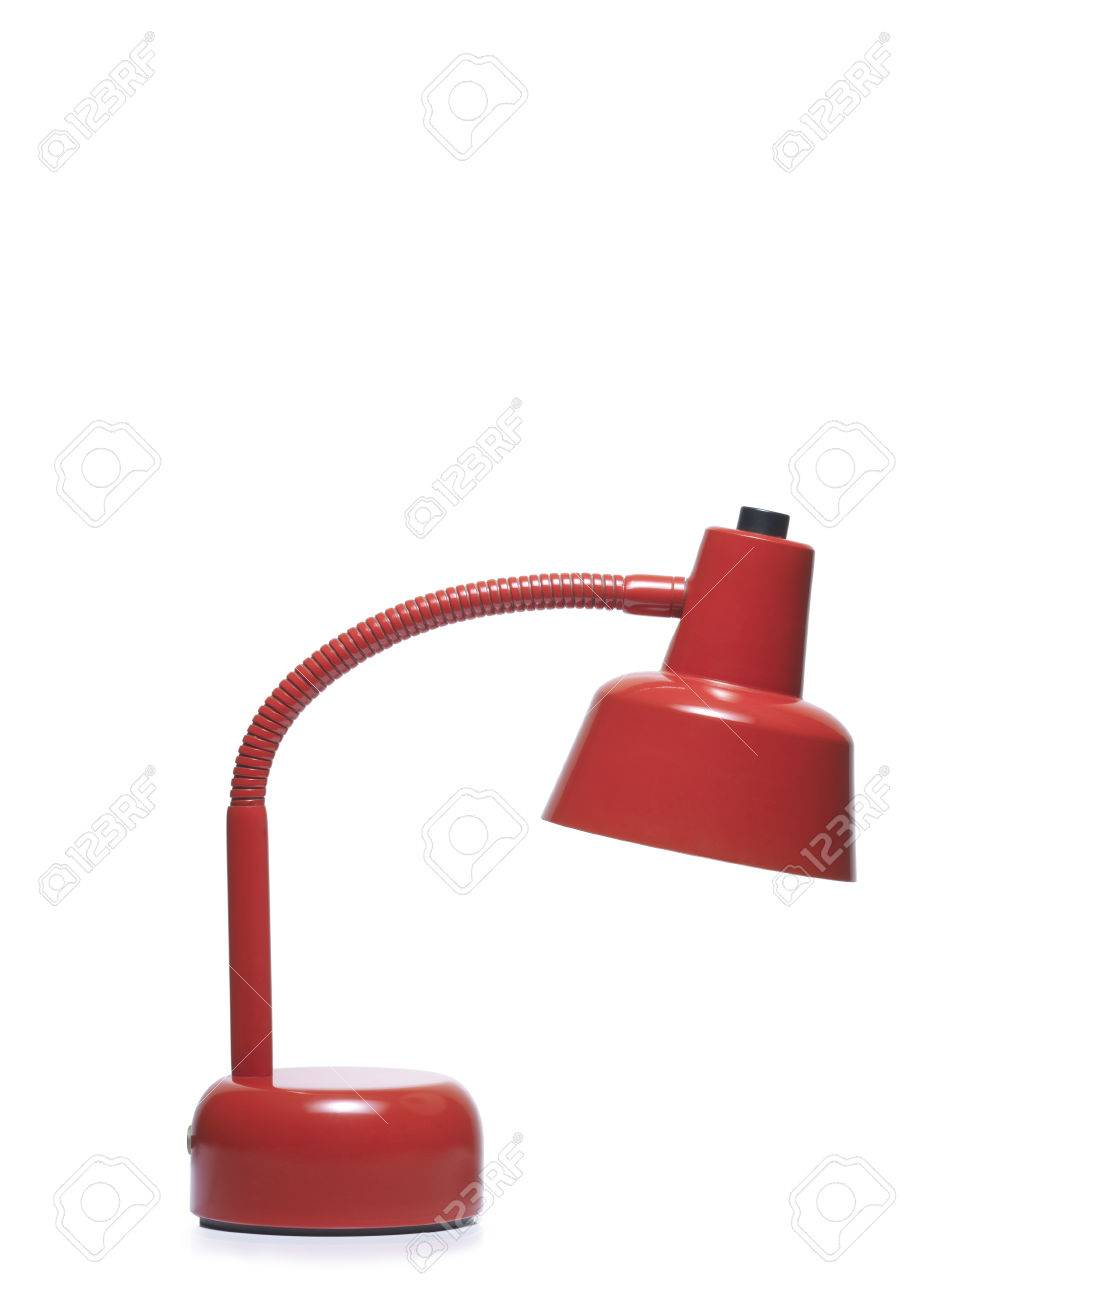 dp charging lighting amazon gooseneck led dimming red com usb touch lamp desk newhouse